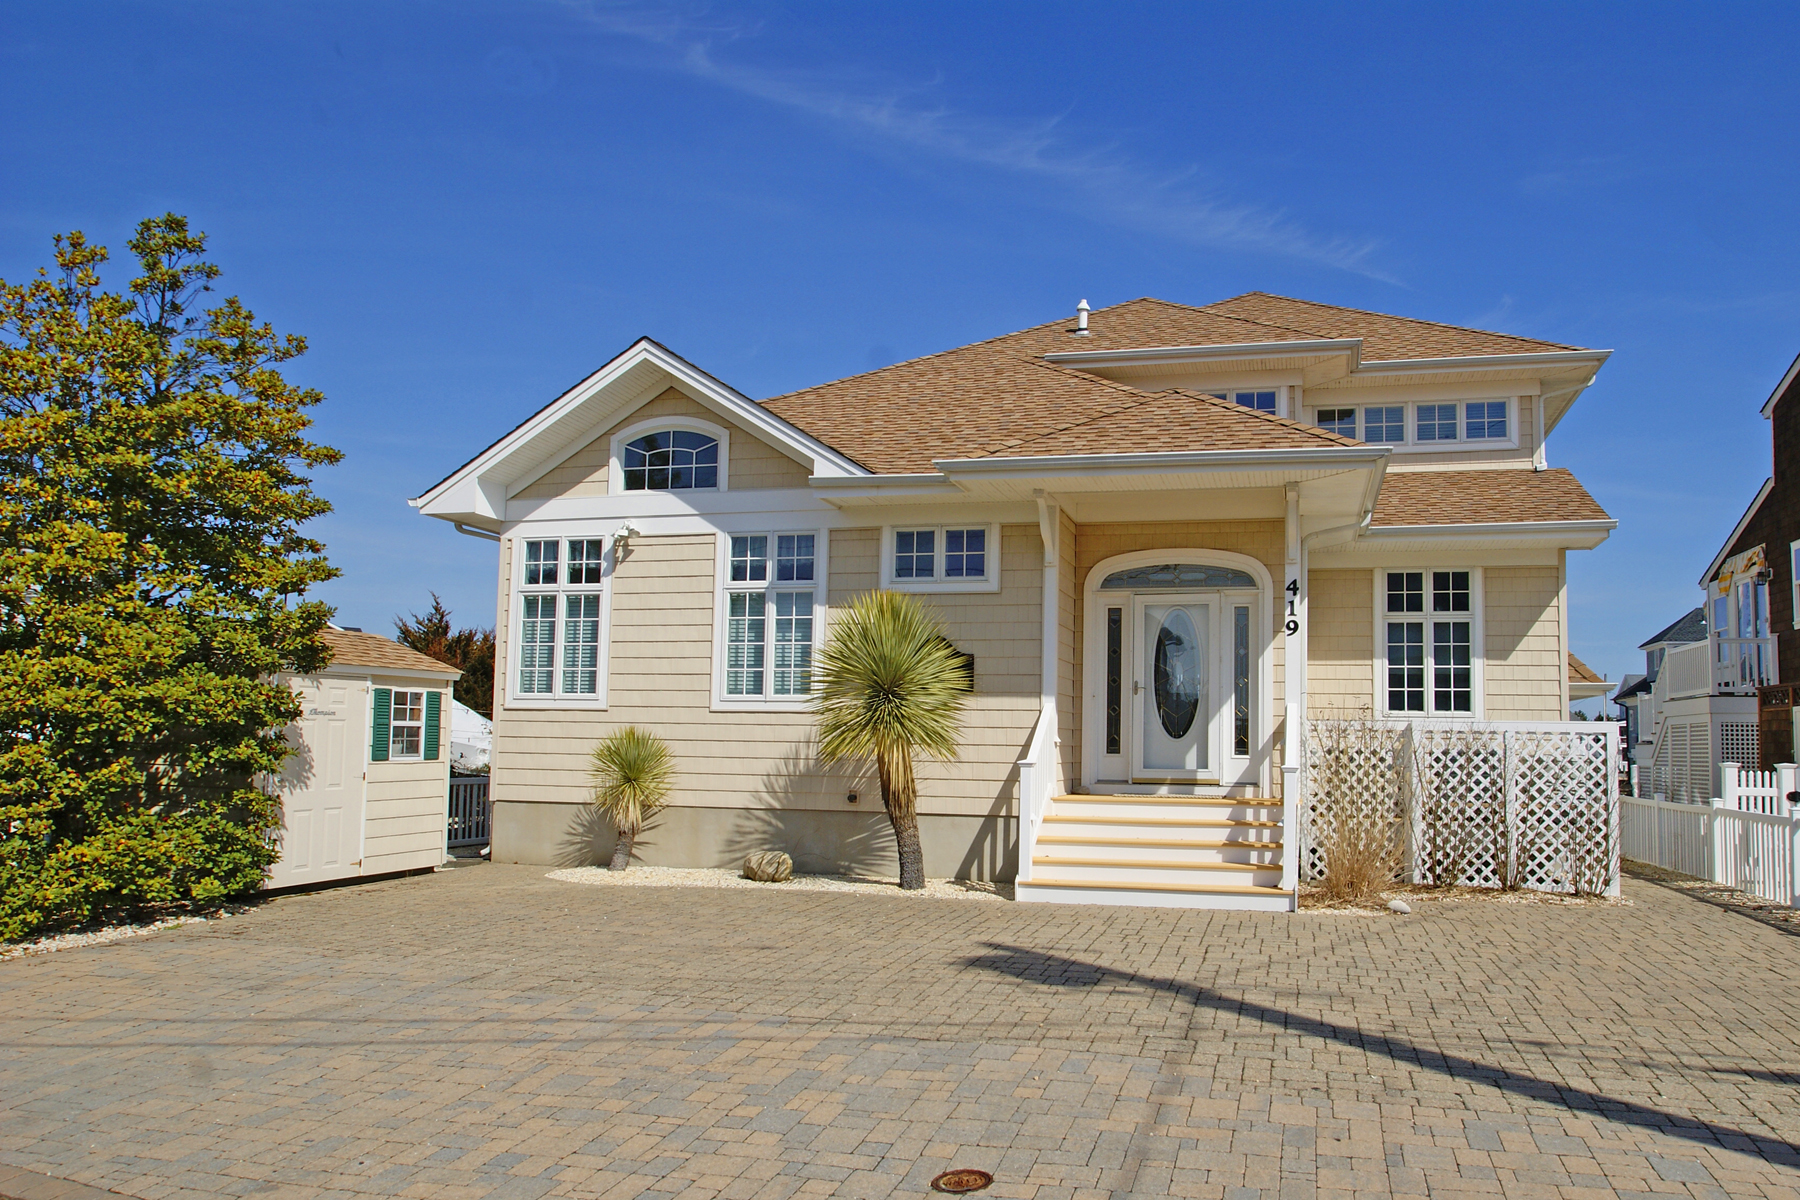 Moradia para Venda às Stunning Lagoon Front Home 419 7th Avenue, Normandy Beach, Nova Jersey 08739 Estados Unidos